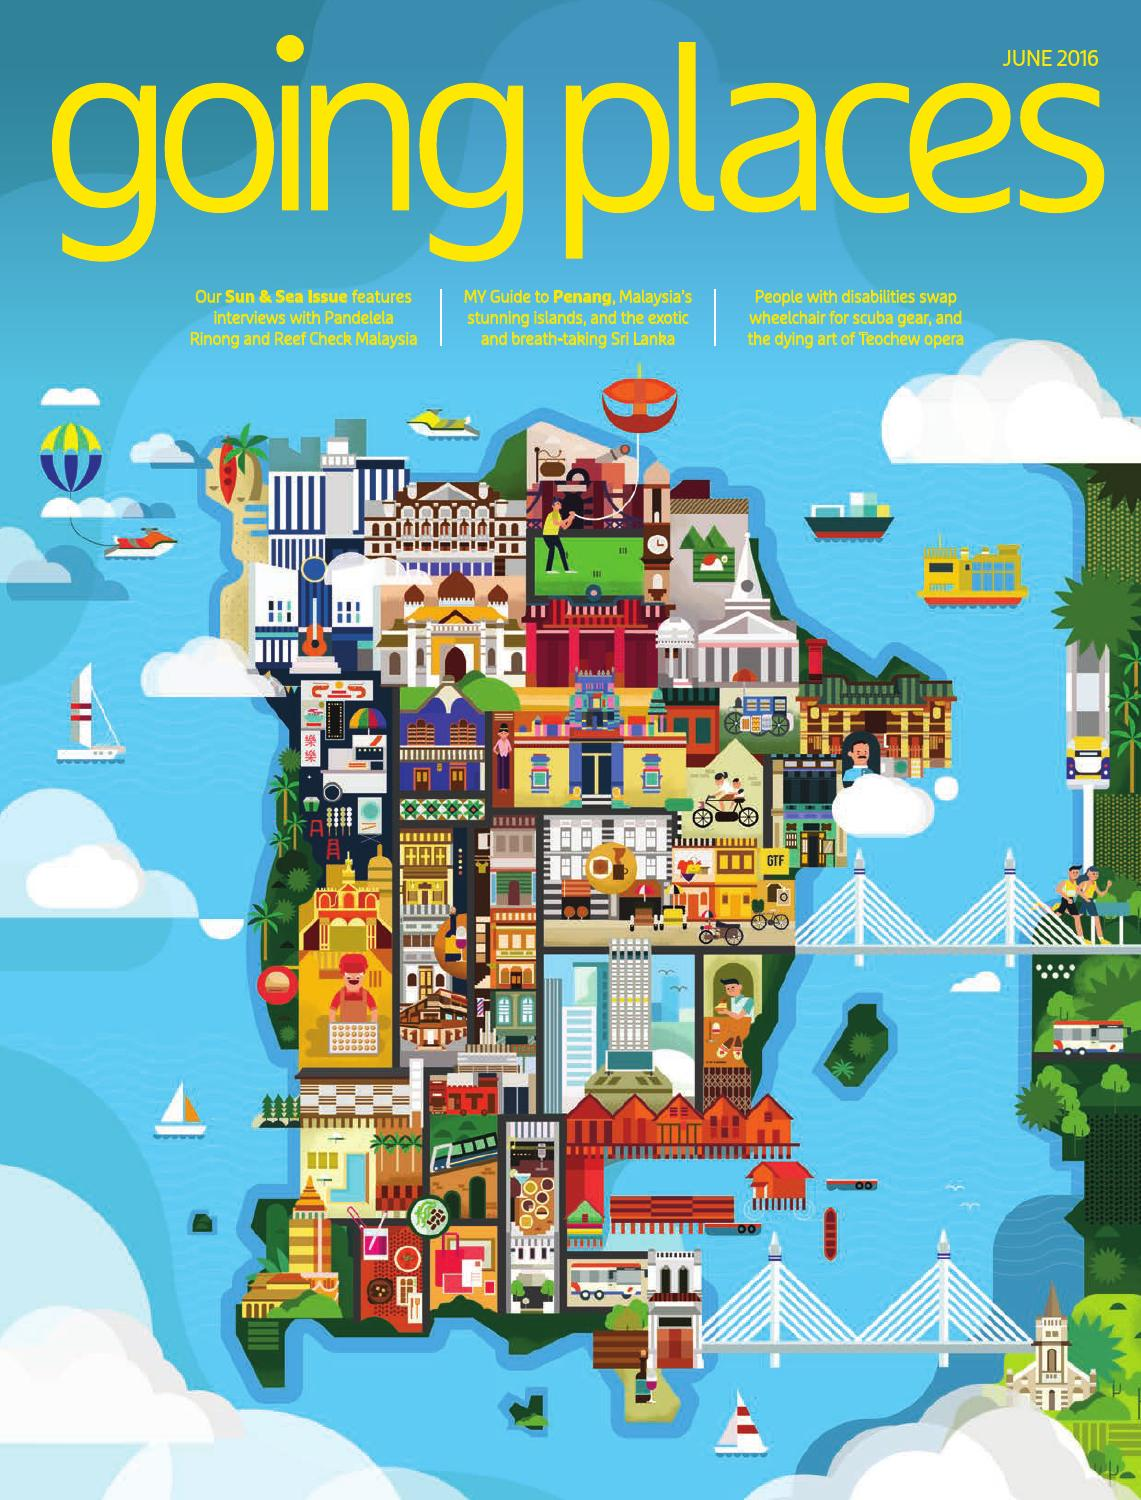 Going Places June 2016